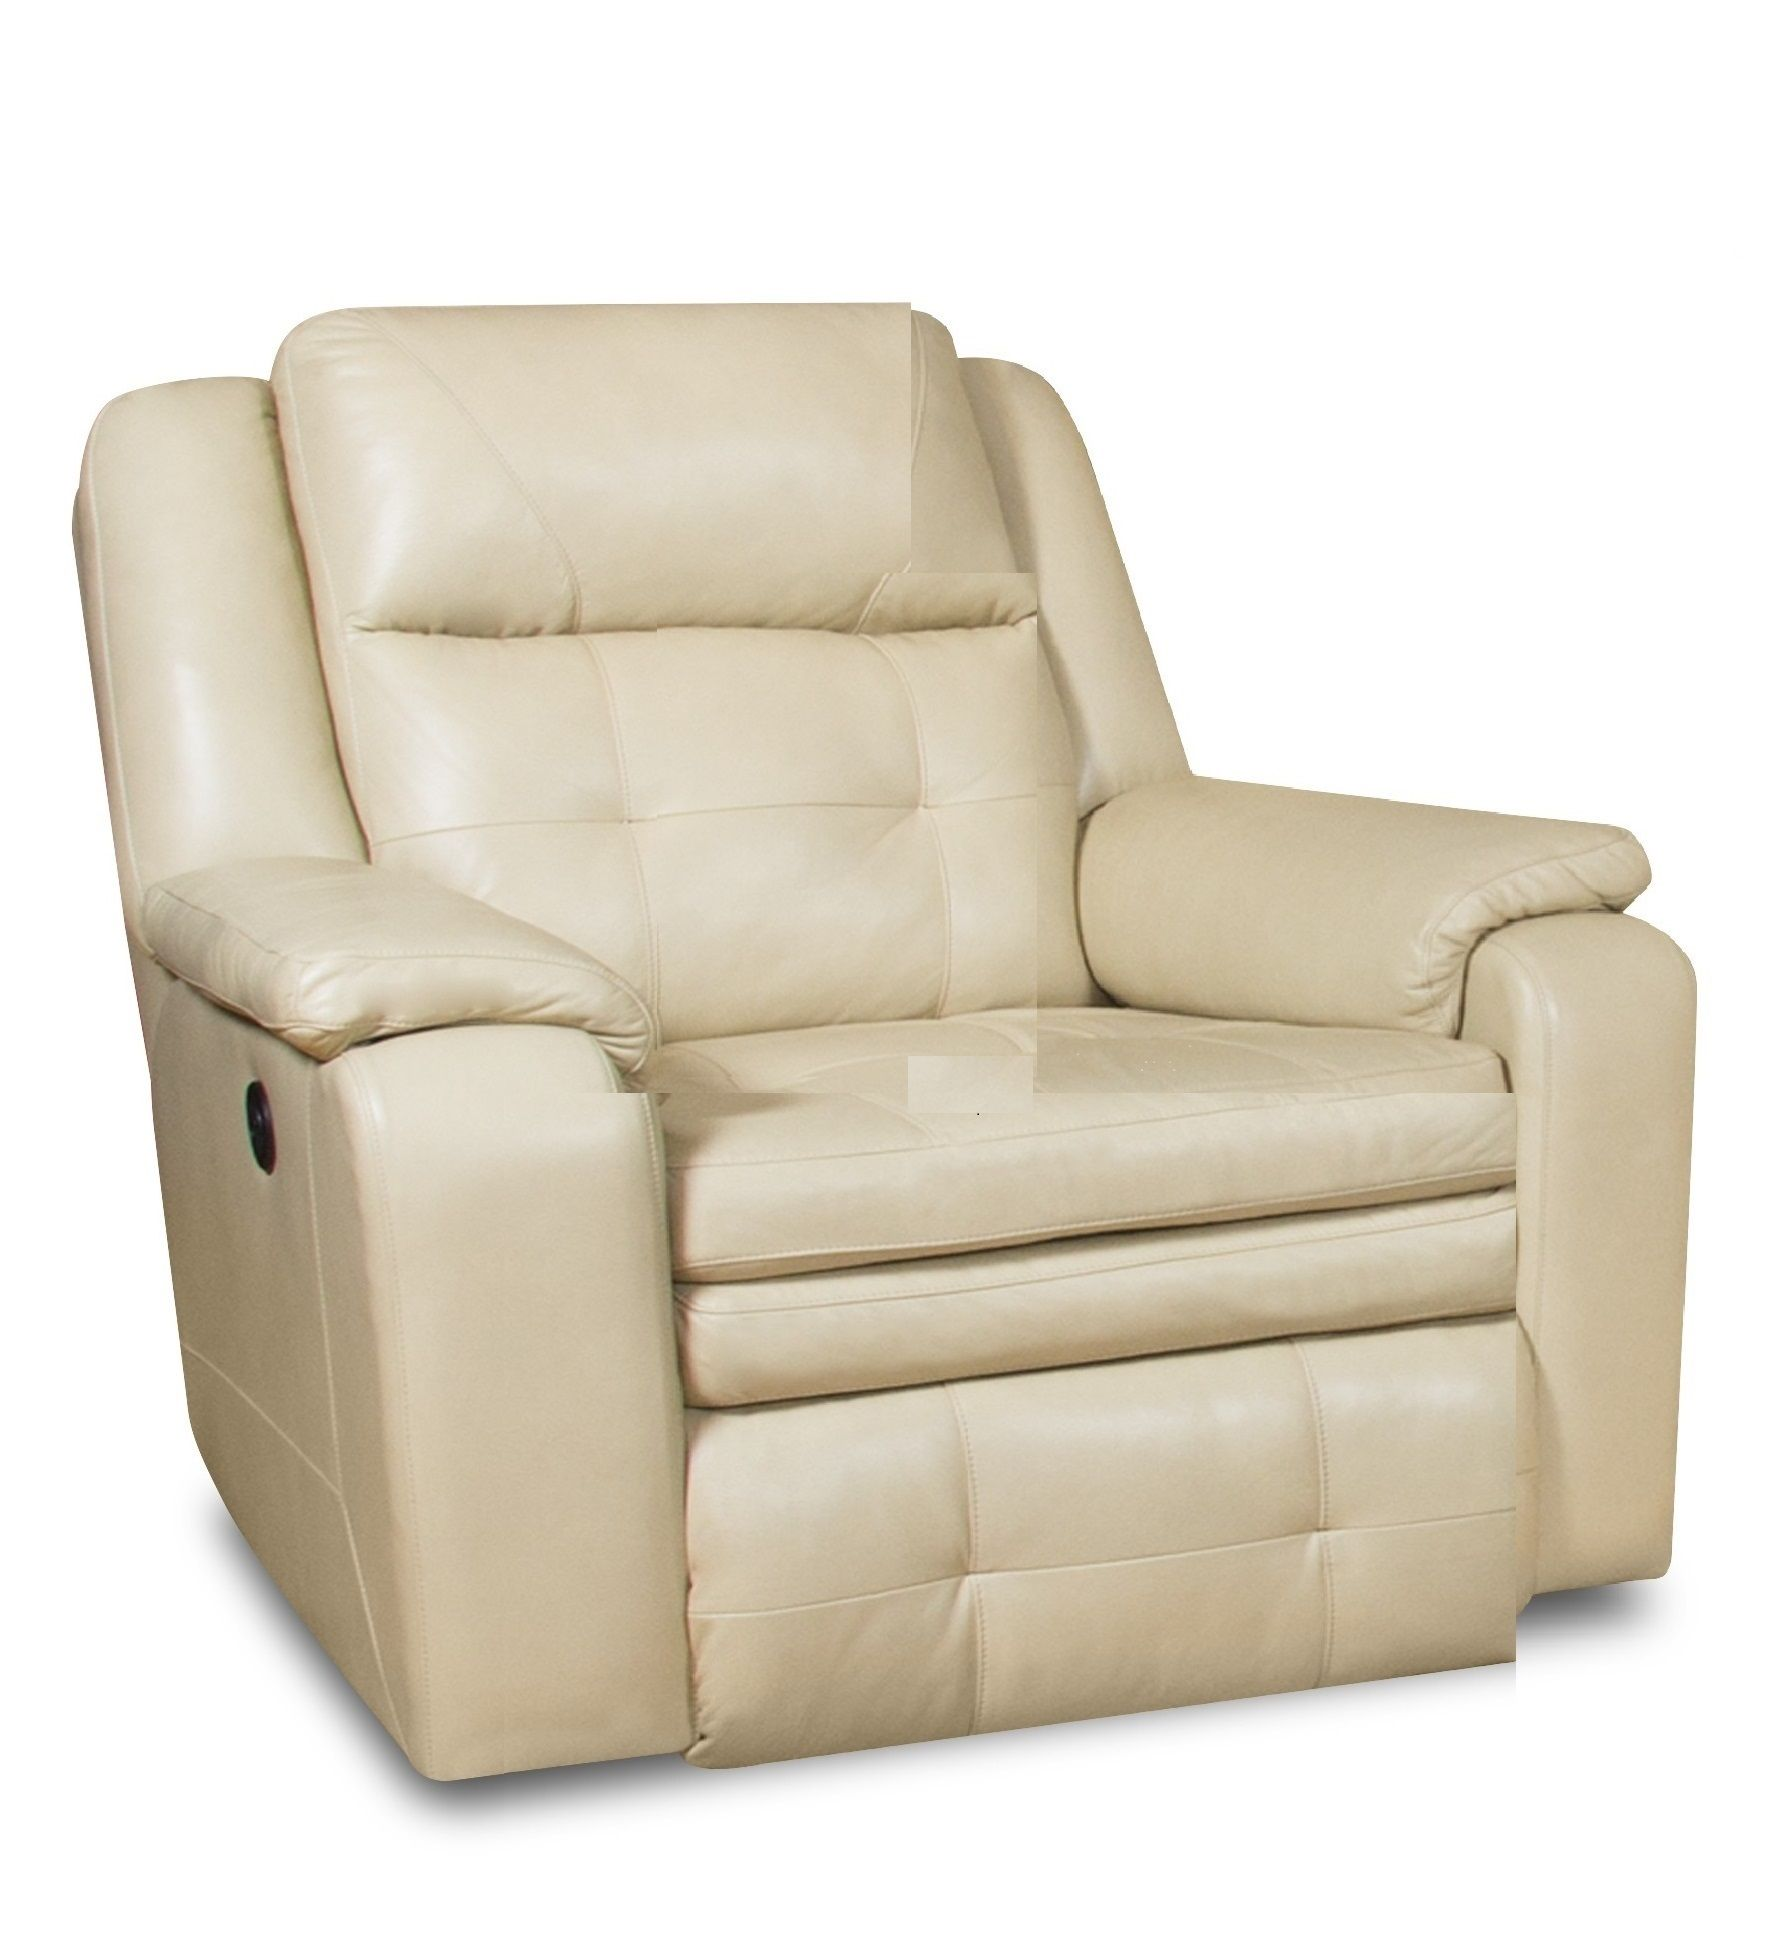 Inspire Power Rocking Recliner 5850p Recliners From Southern Motion At Crowley Furniture Recliner Southern Motion Reclining Furniture